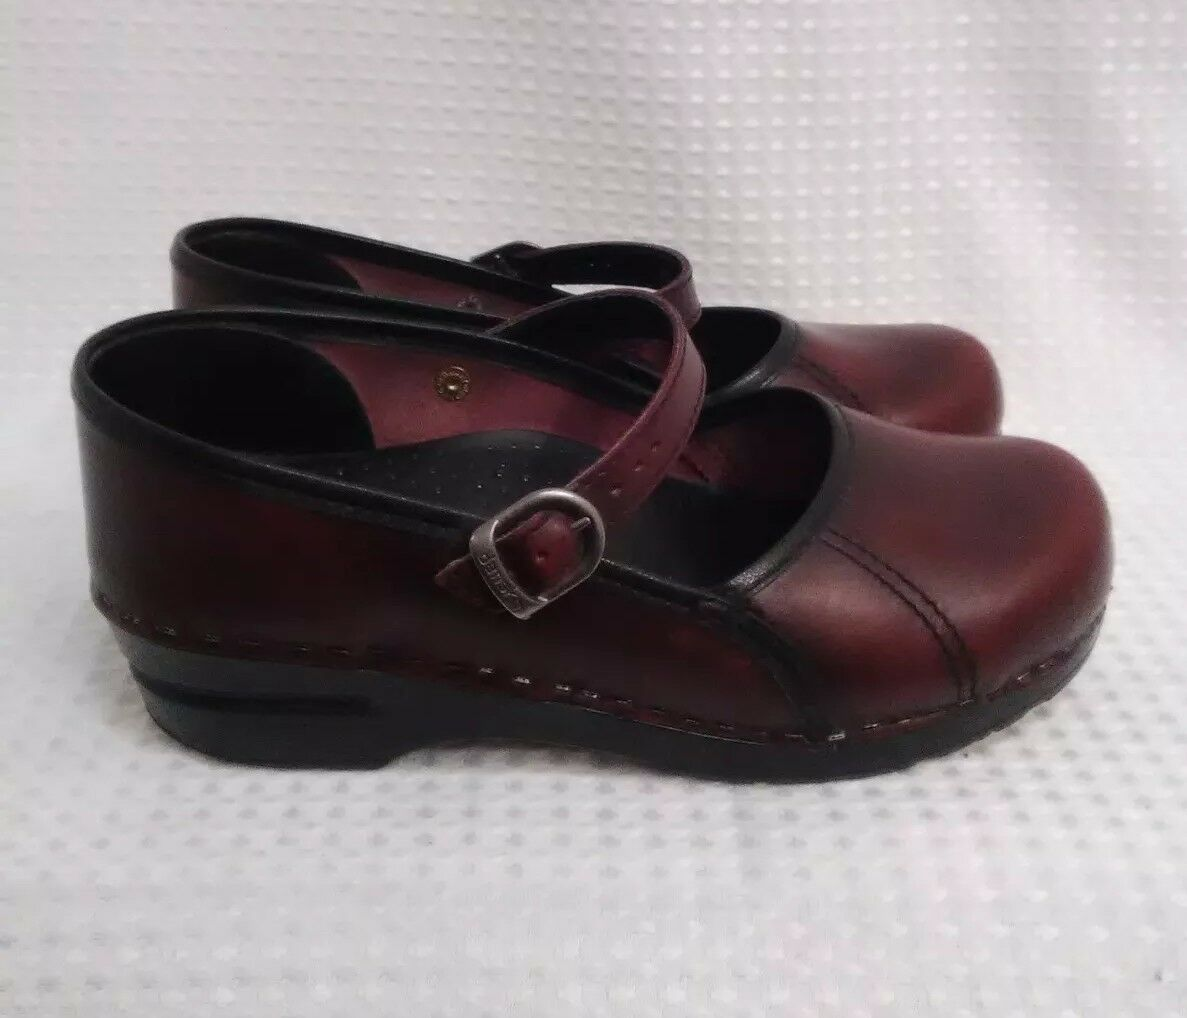 Dansko Leather Mary Jane Jane Jane rot braun slip on schuhe damen Größe 8 buckle ed2574